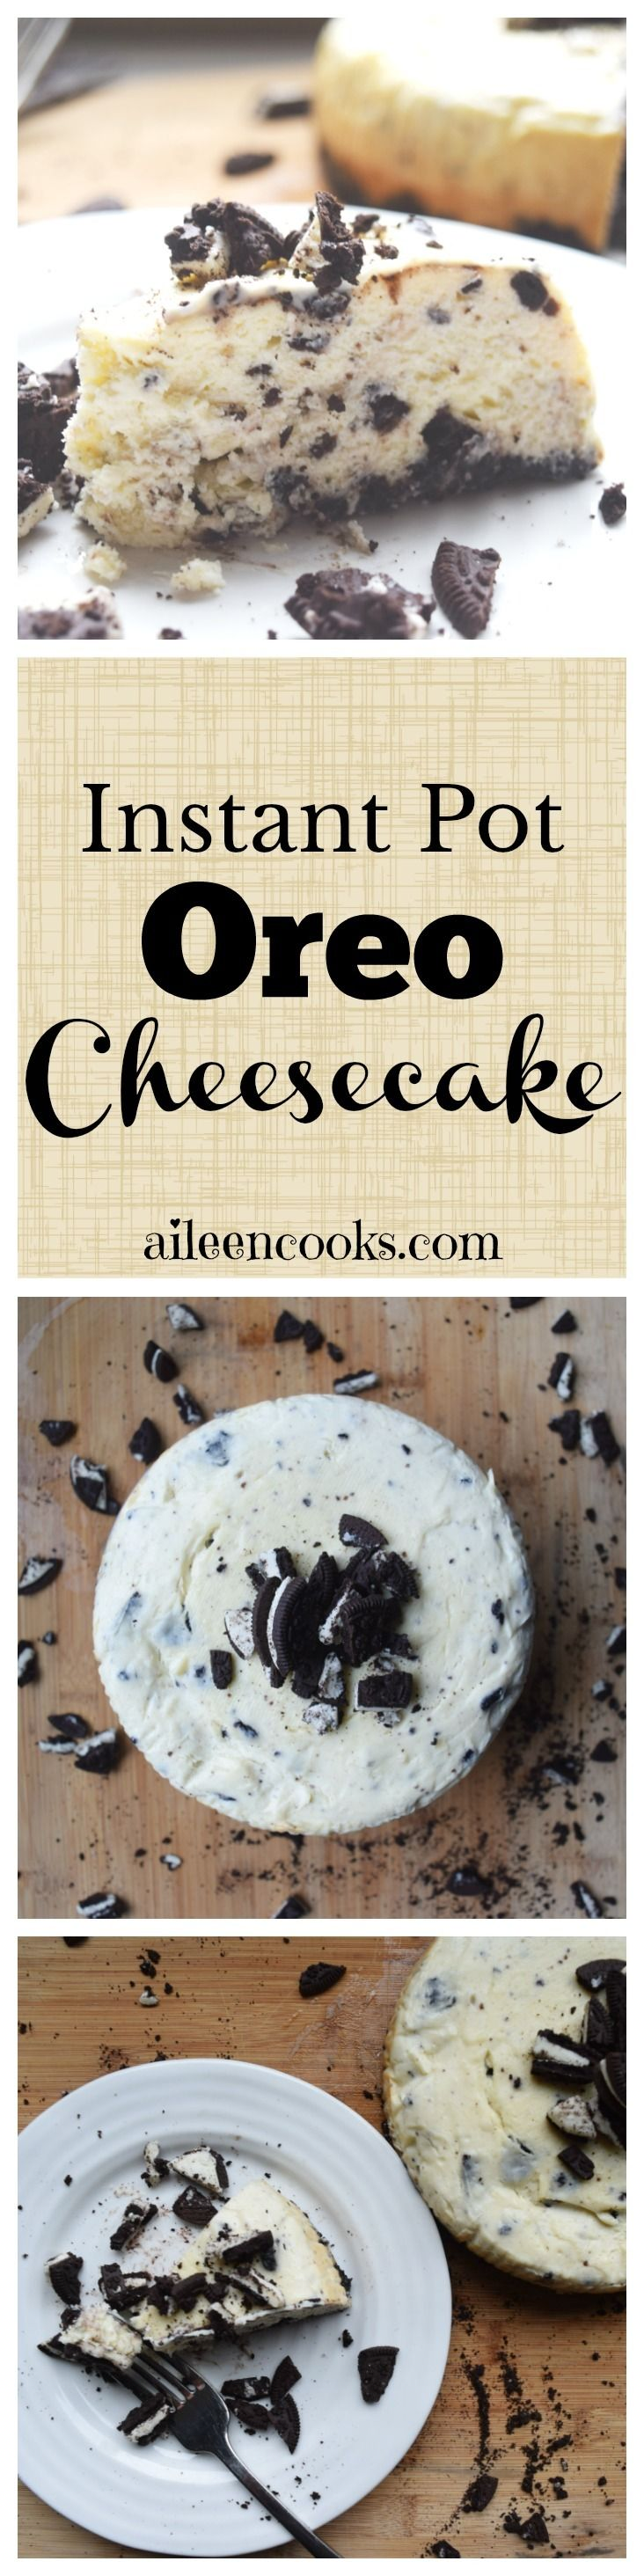 I made this oreo cheesecake in my instant pot and it was so good! If you have a …